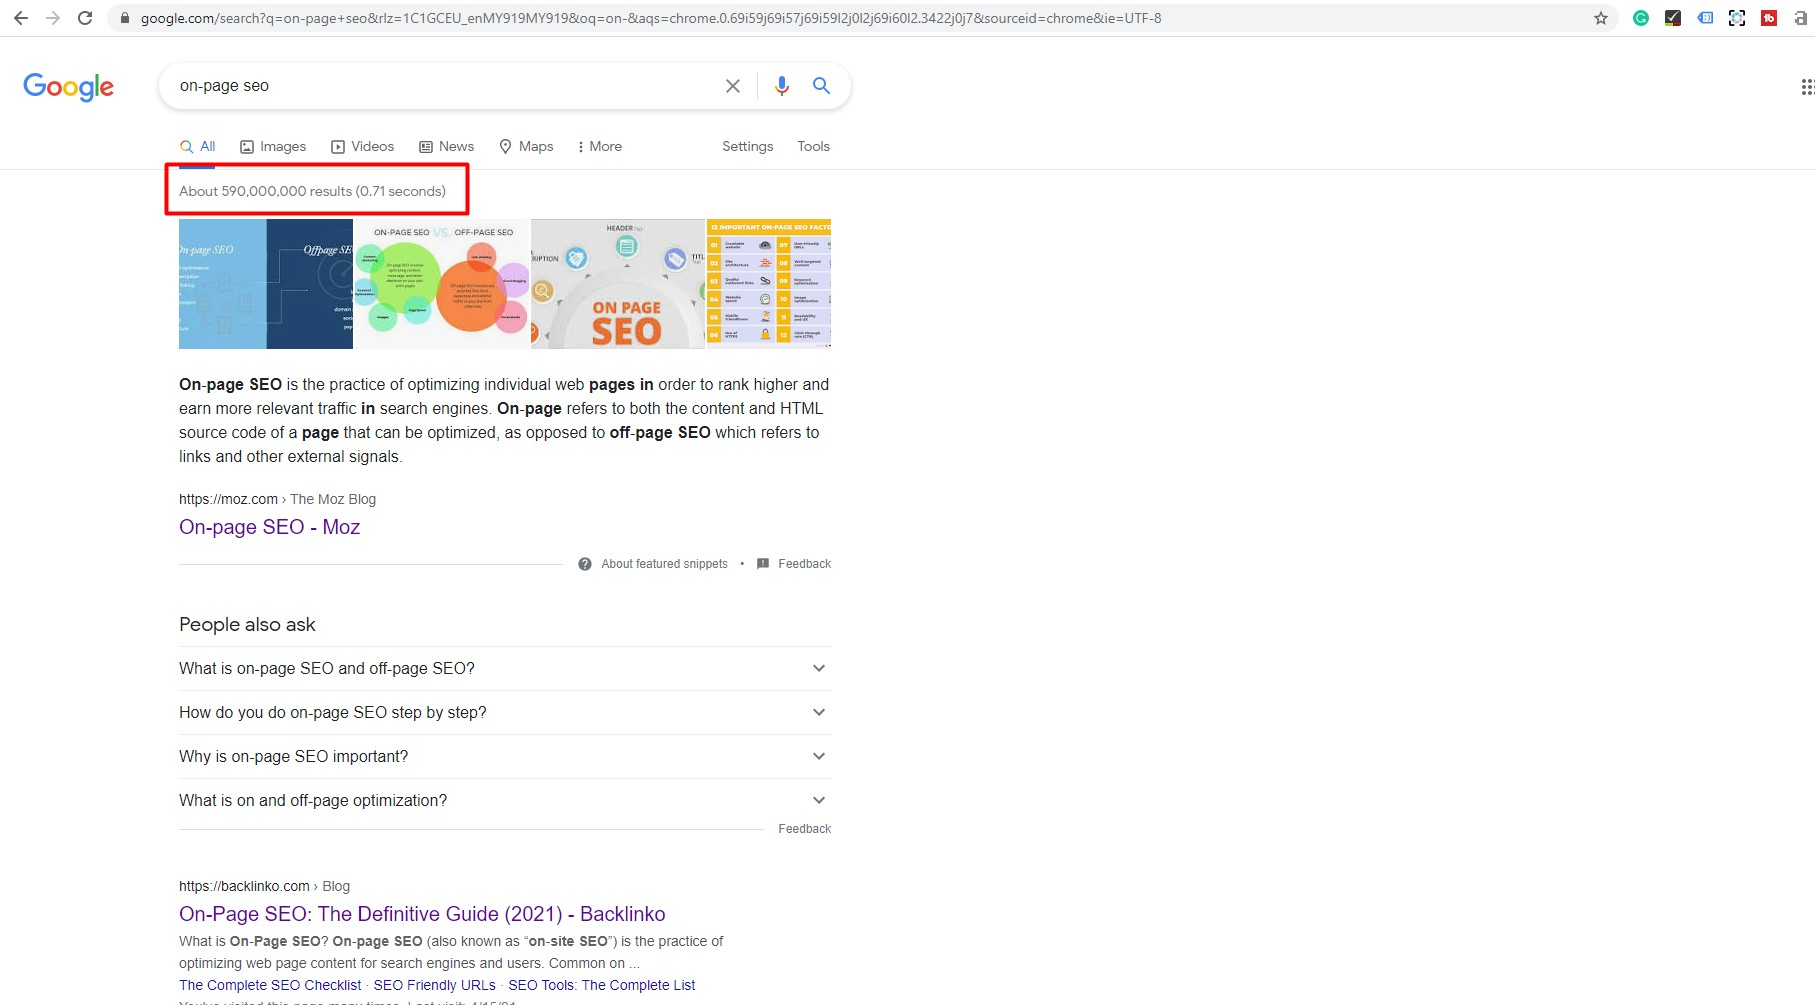 competition on google is fierce example of number of results in Google for on-page seo keyword